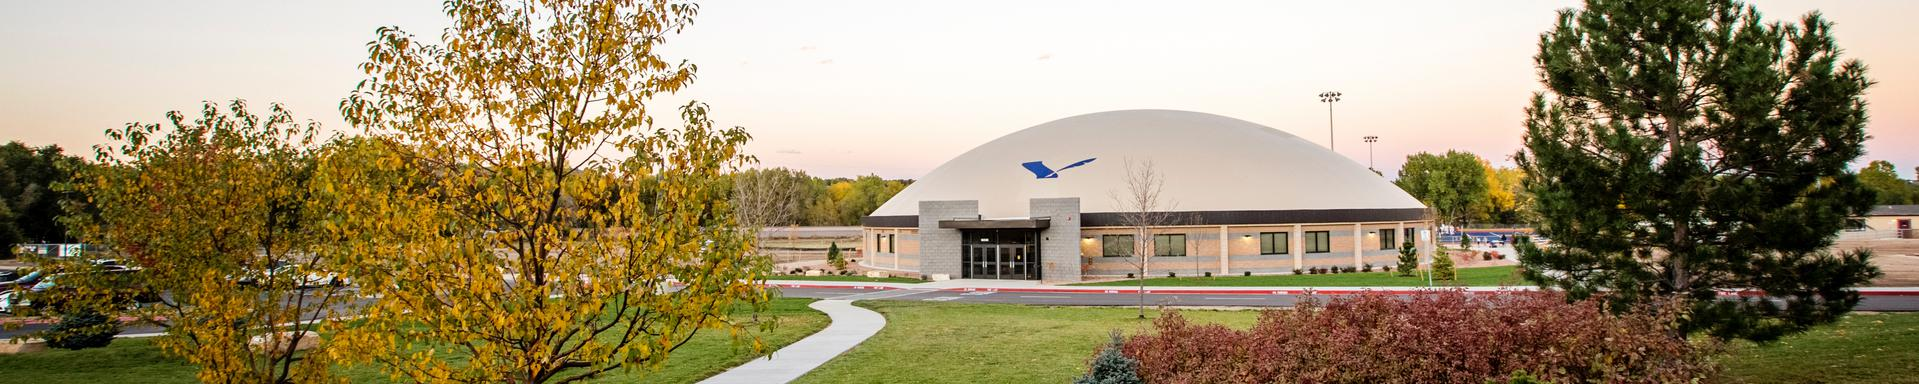 The Vanguard School in Colorado Springs, Colorado